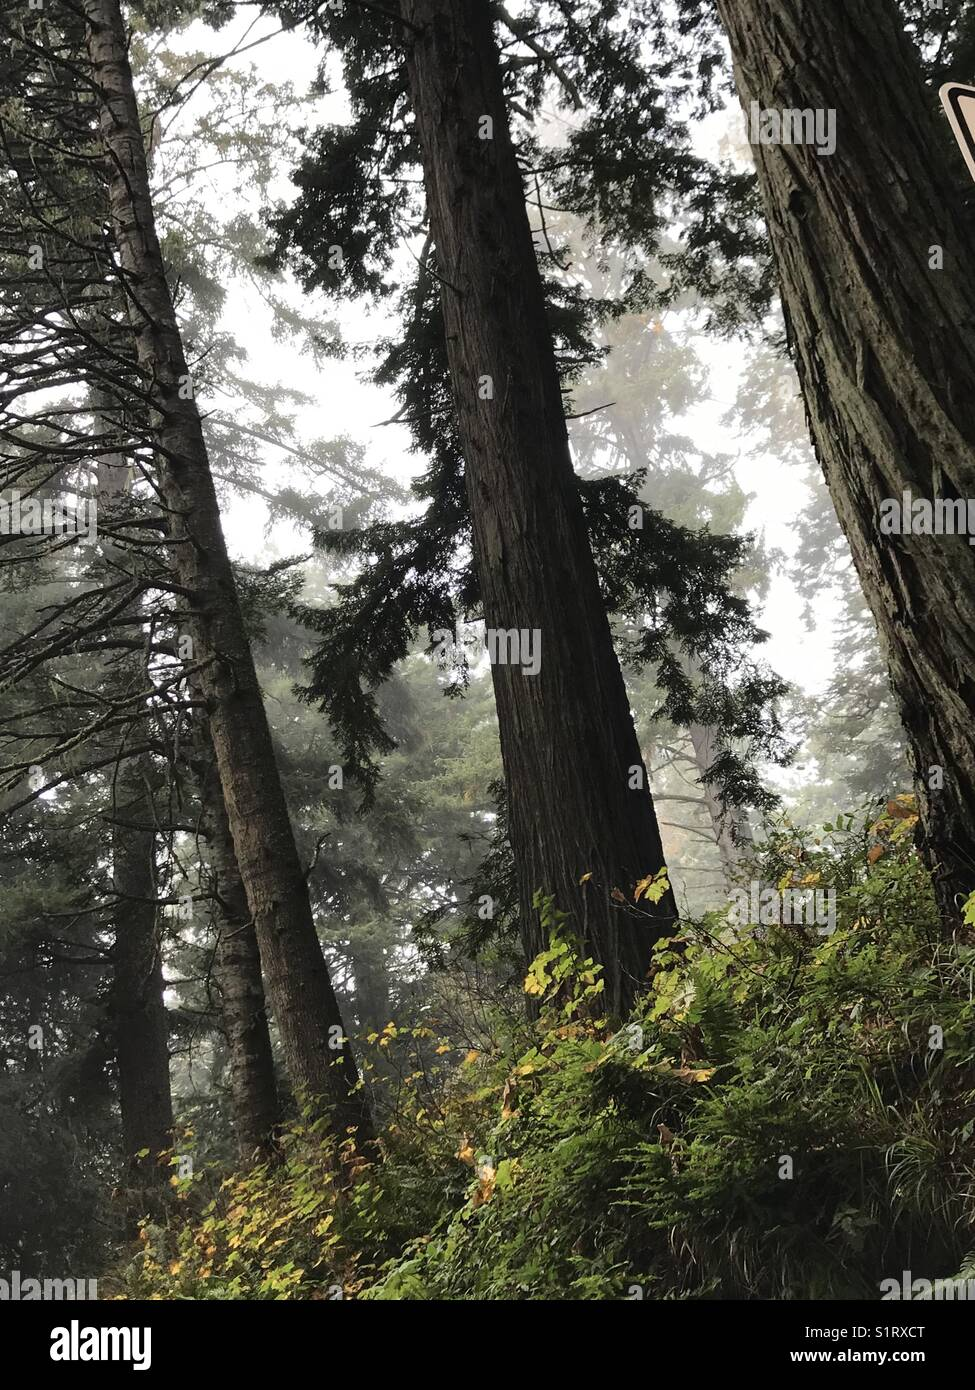 Redwoods in the fog - Stock Image